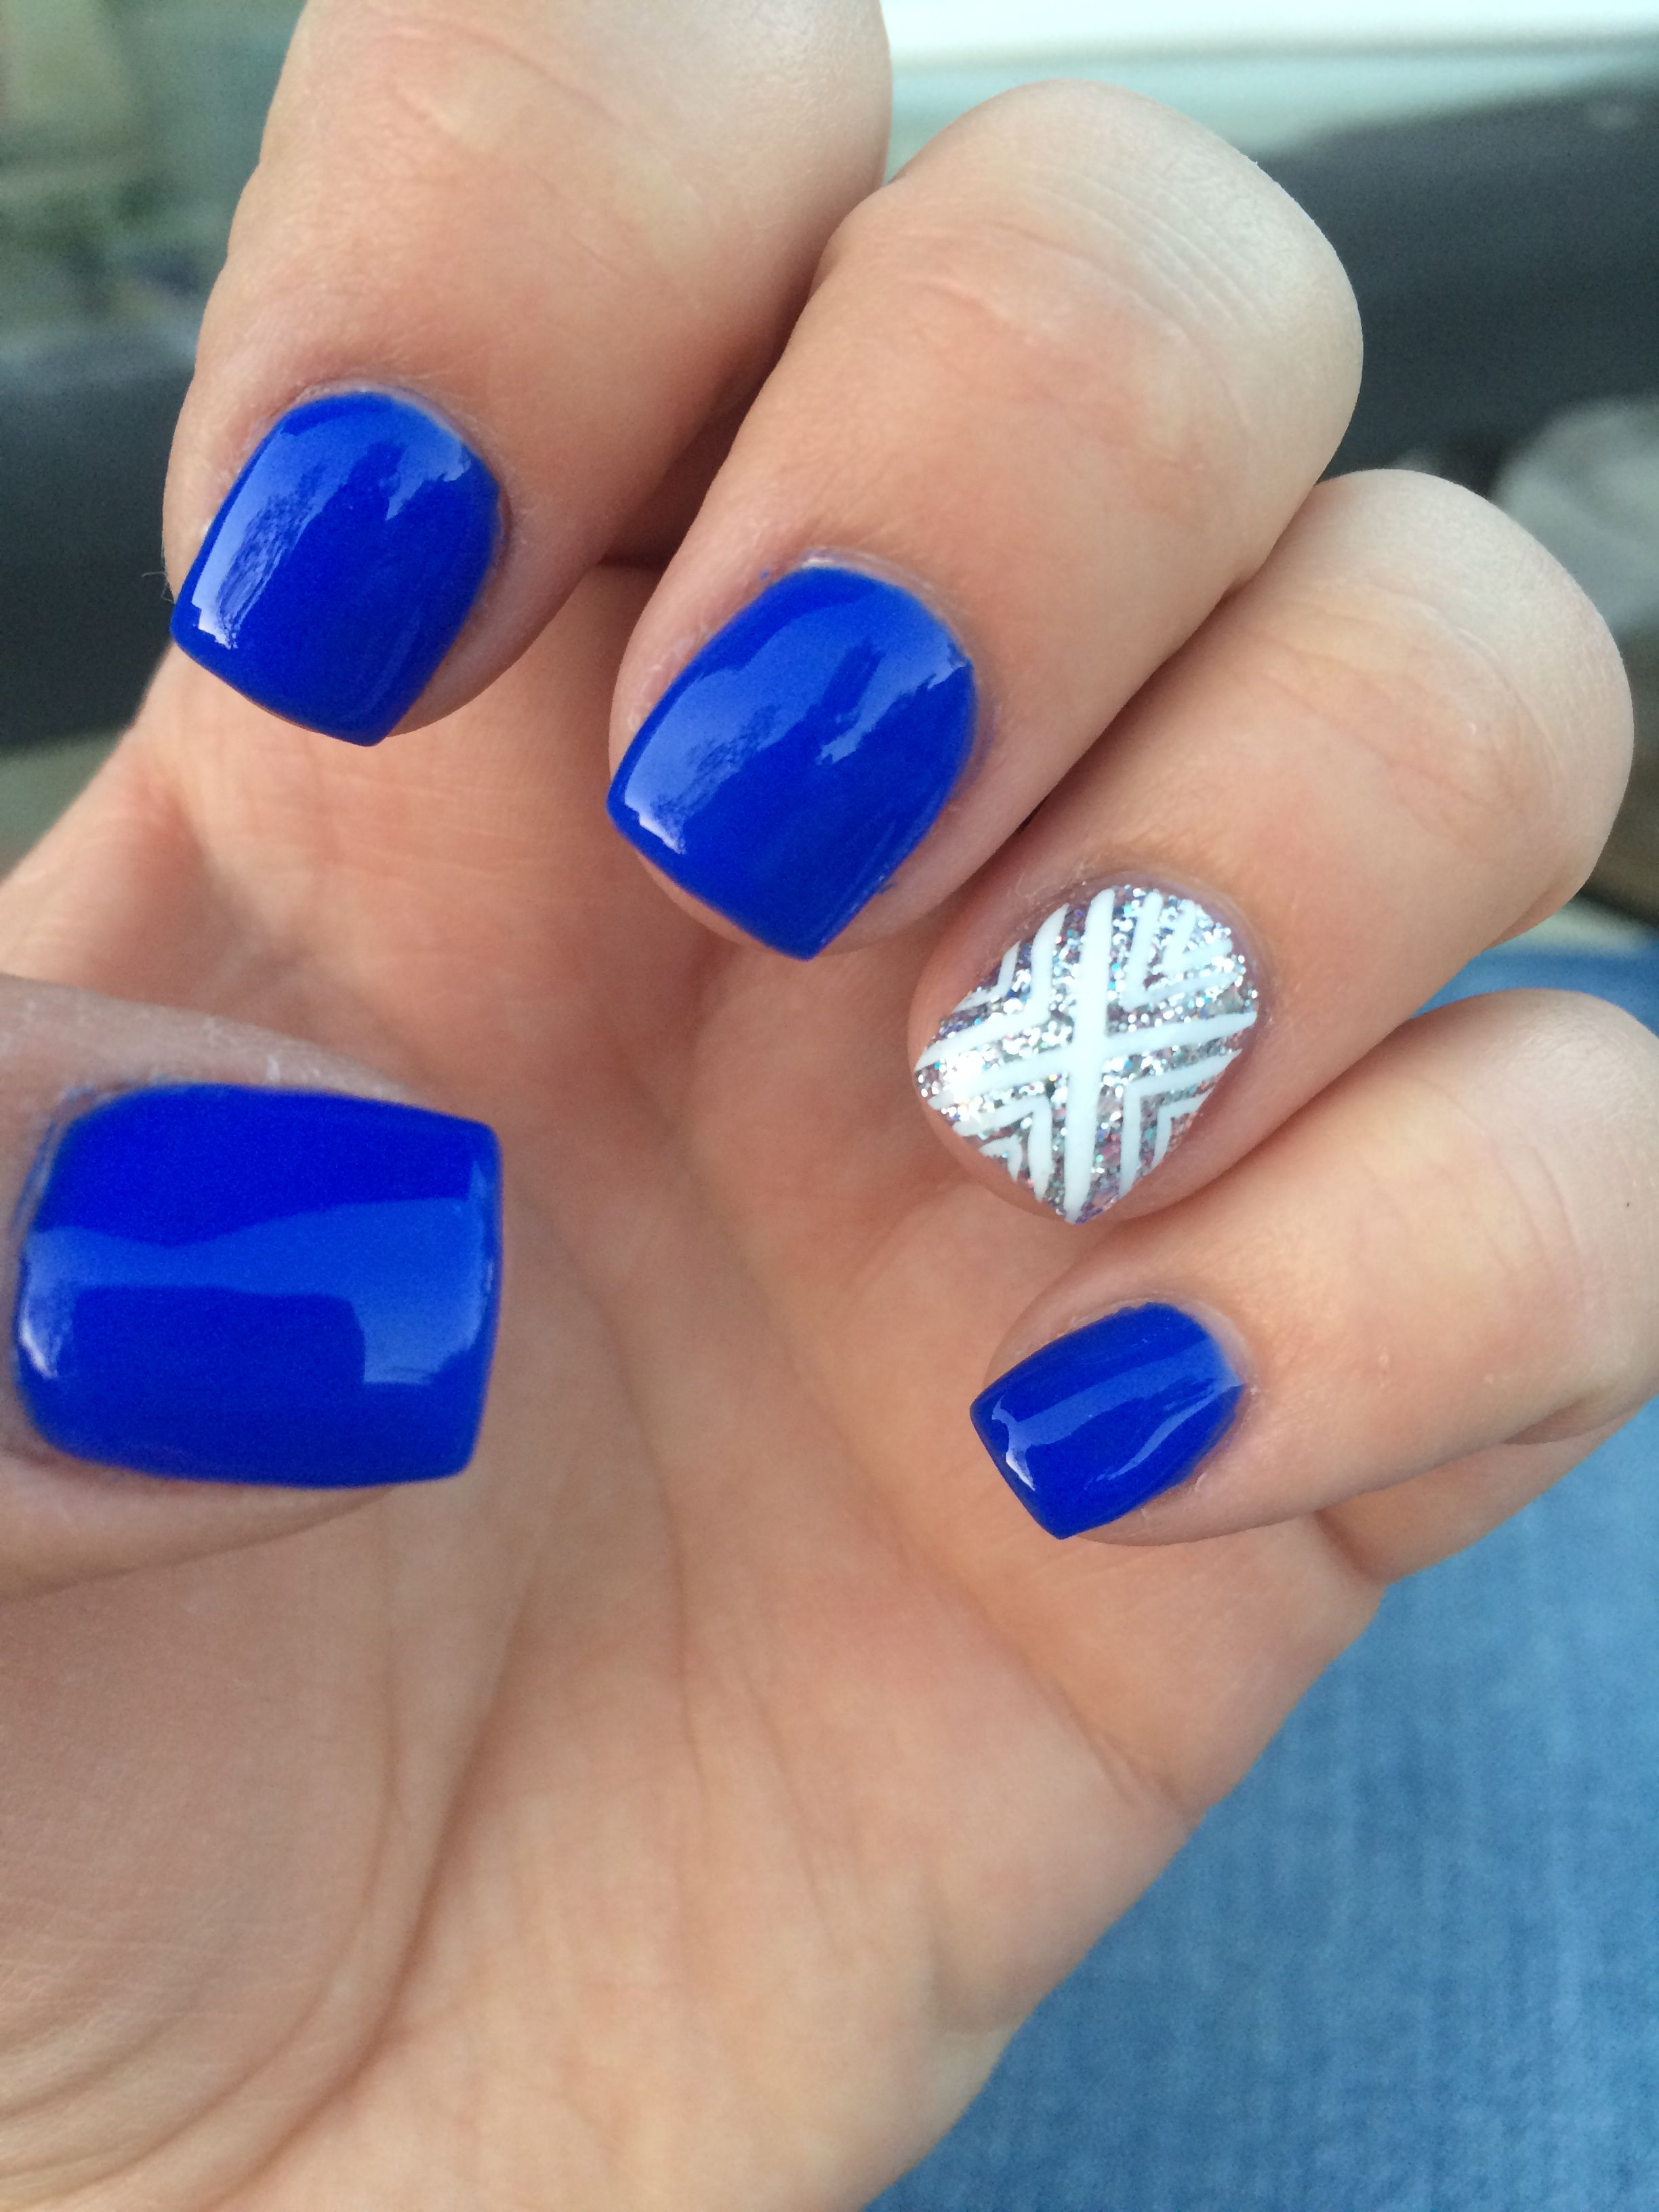 cute gel nailscourtney m | my style | pinterest | makeup, nail